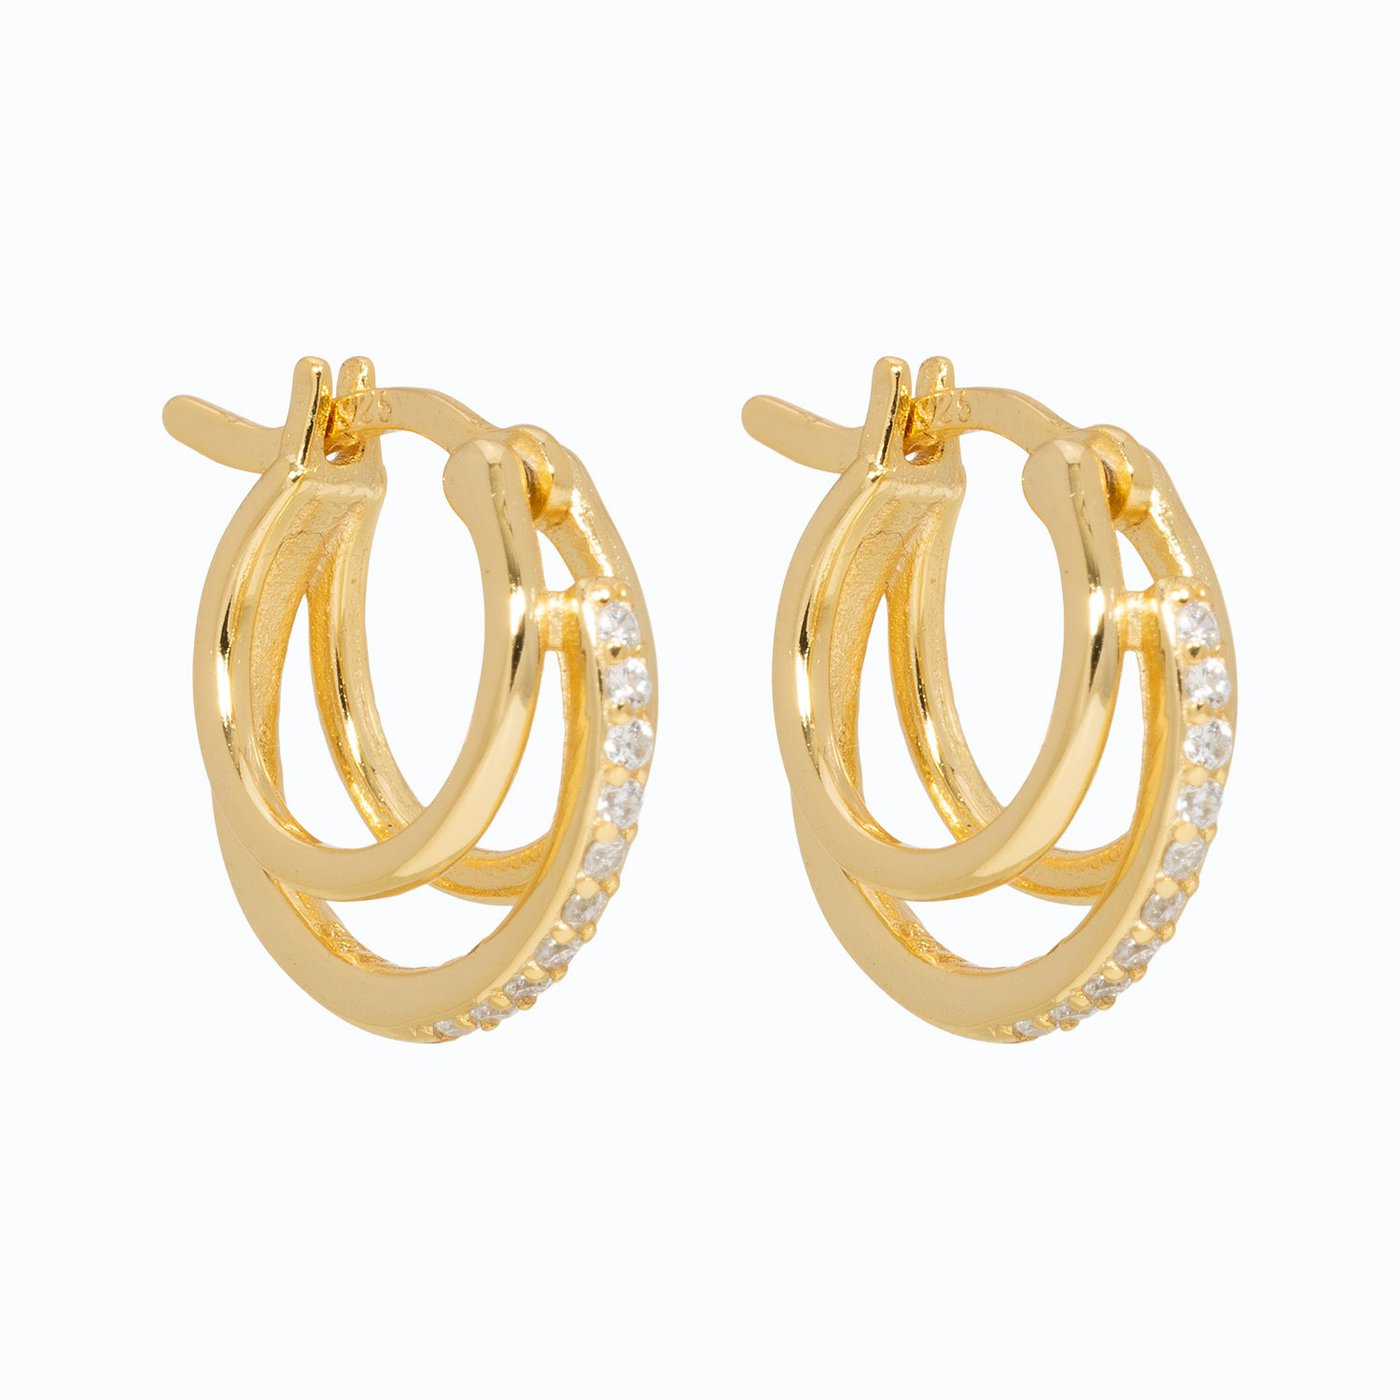 Lillys Amsterdam Gold Jolie Huggie Hoop Earrings